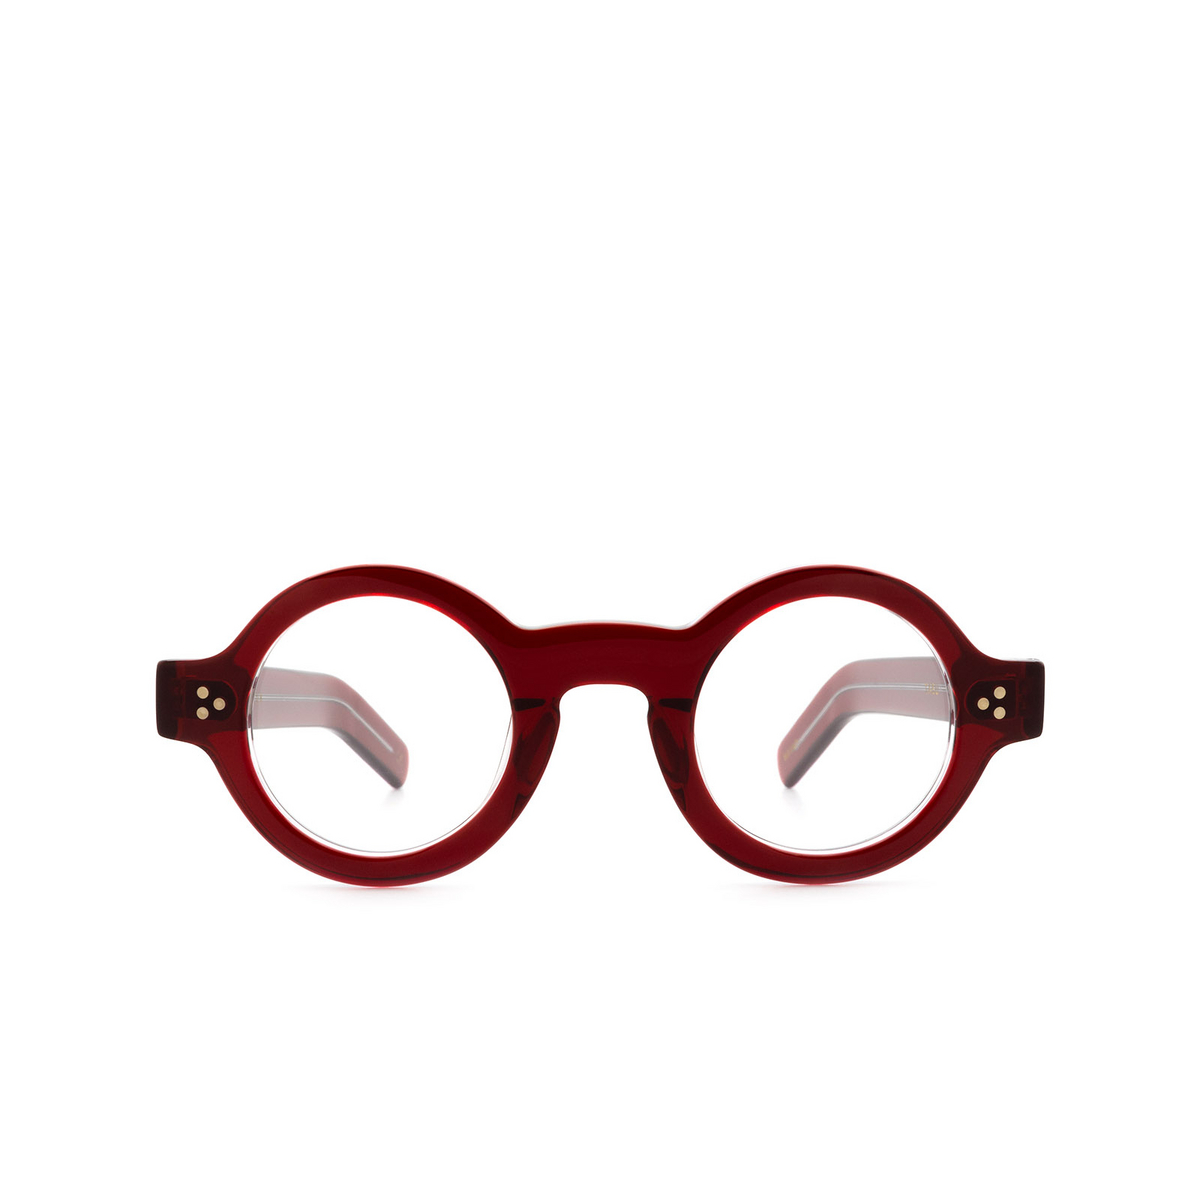 Lesca® Round Eyeglasses: Tabu Optic color Rouge A4 - front view.